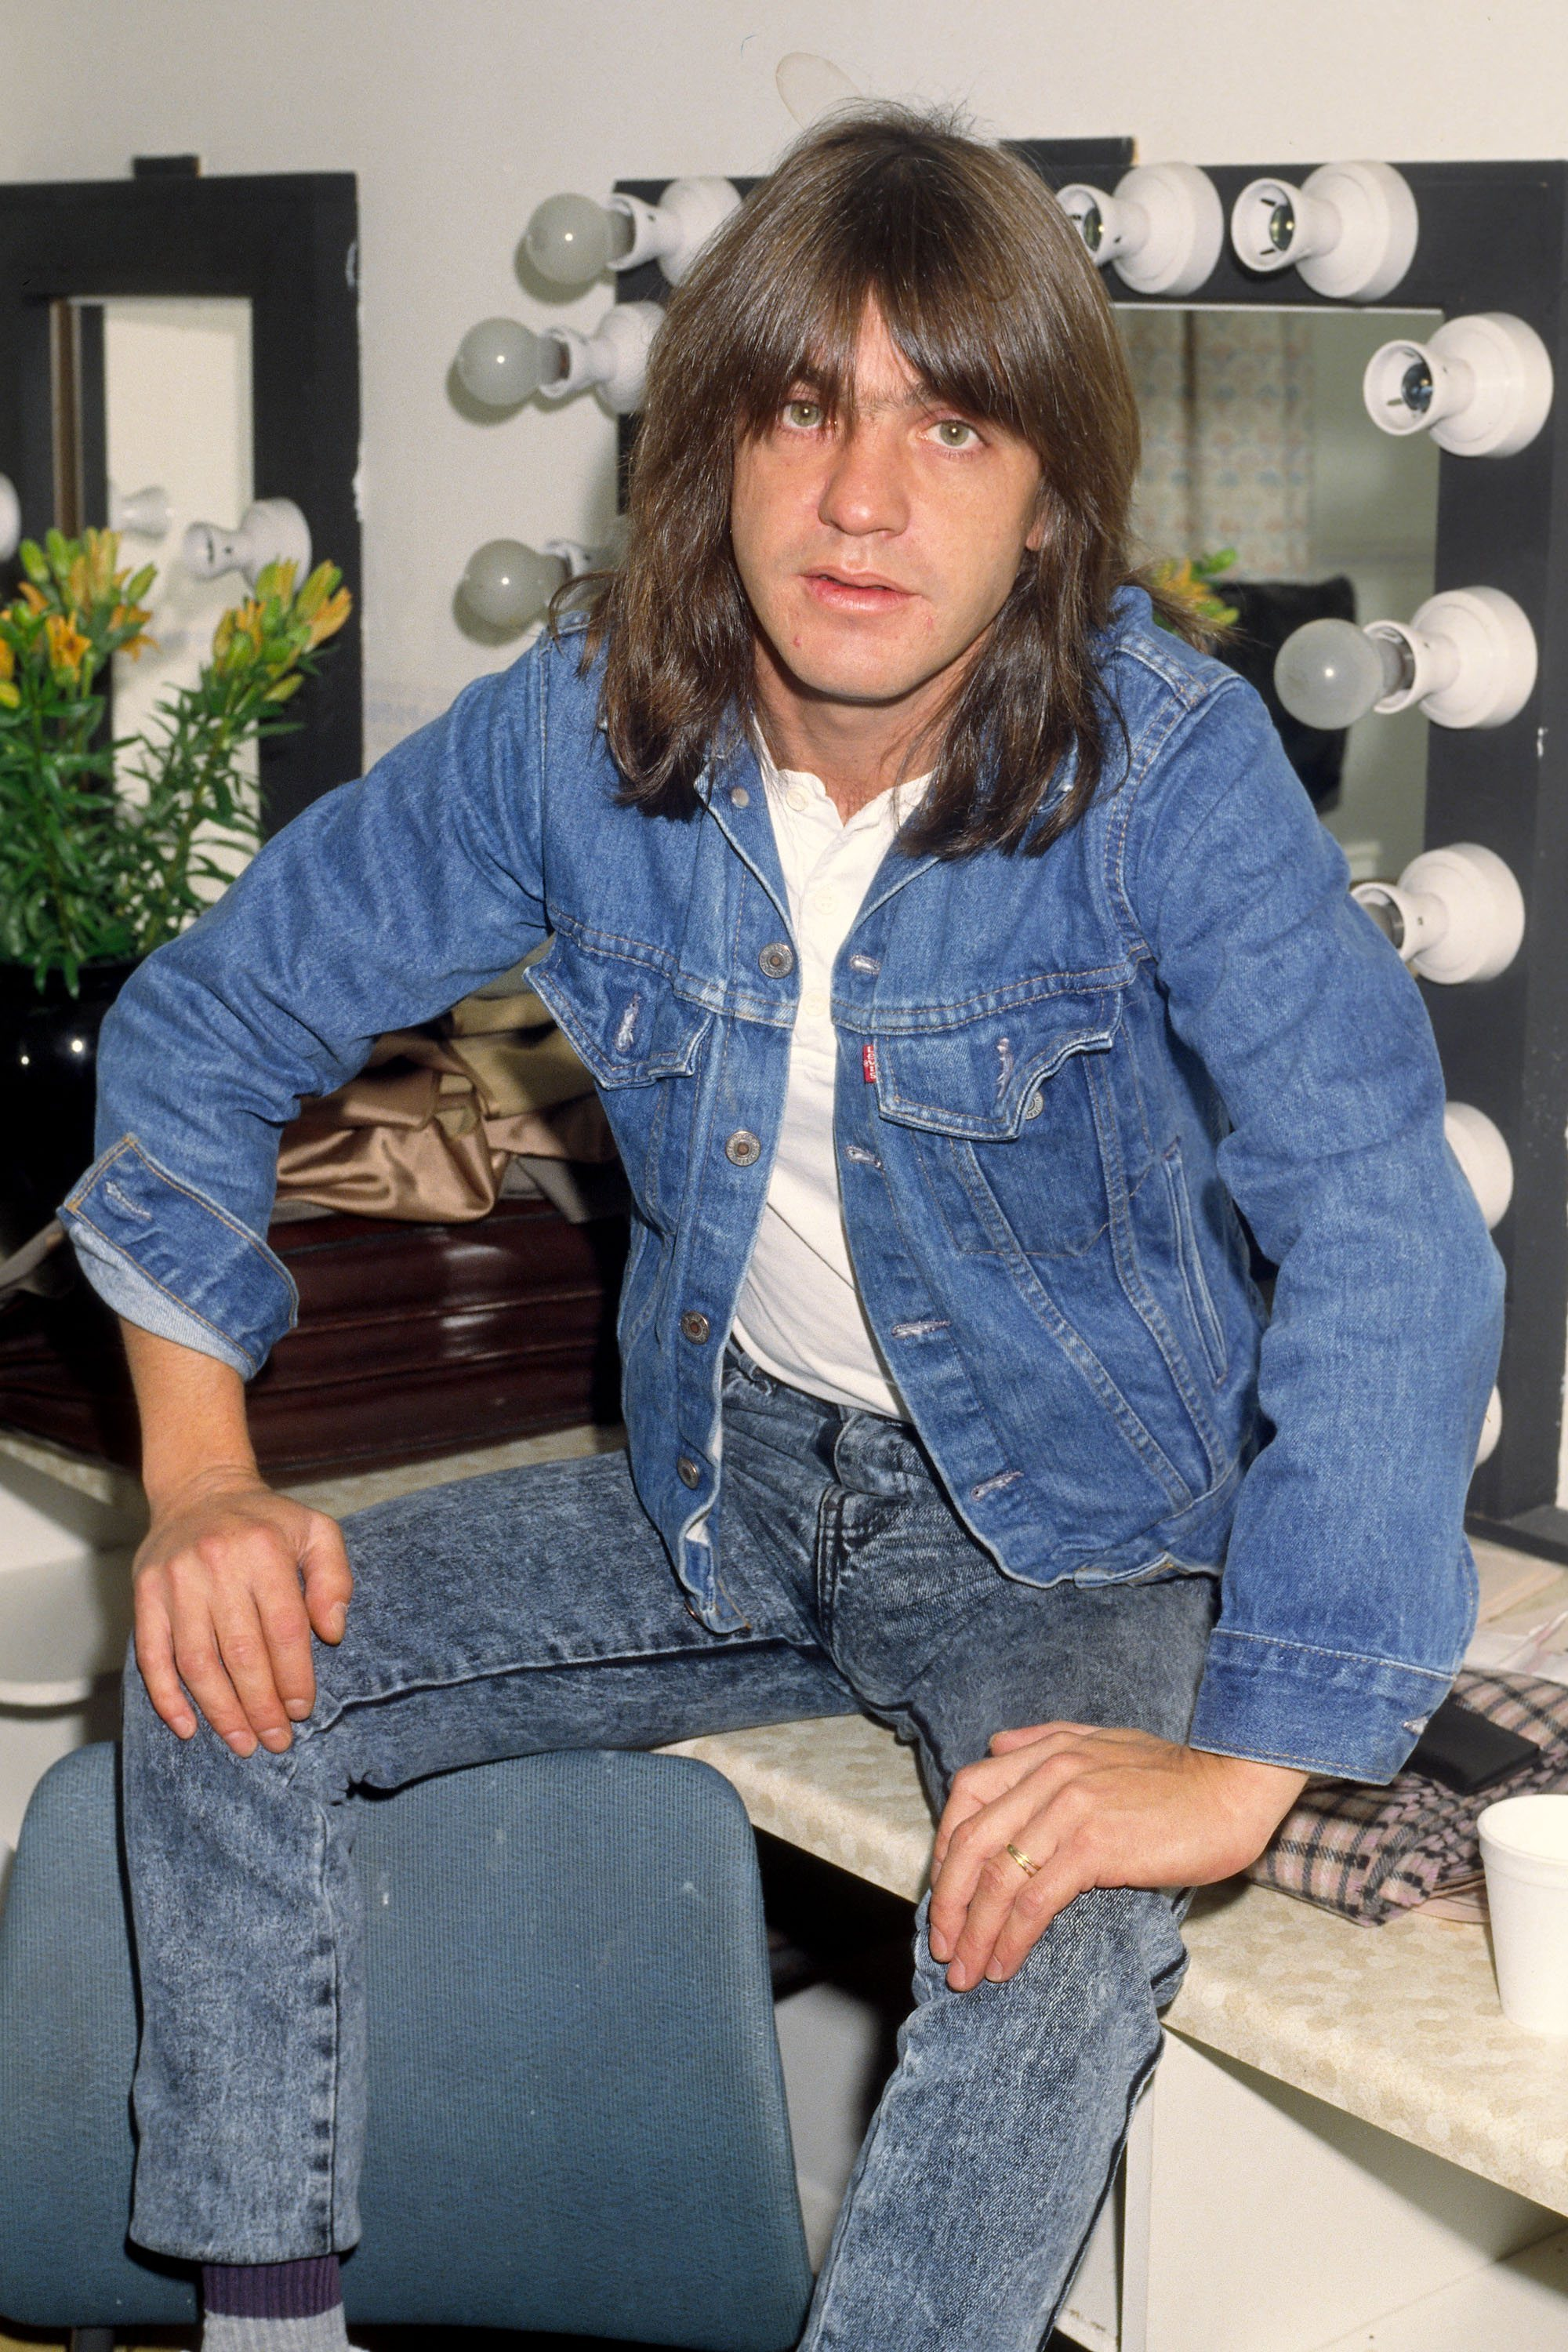 Malcolm Young of AC/DC backstage at Wembley Arena London, England - 10.03.88  Featuring: Malcolm Young Where: London, United Kingdom When: 10 Mar 1988 Credit: WENN  **Only available for publication in USA**